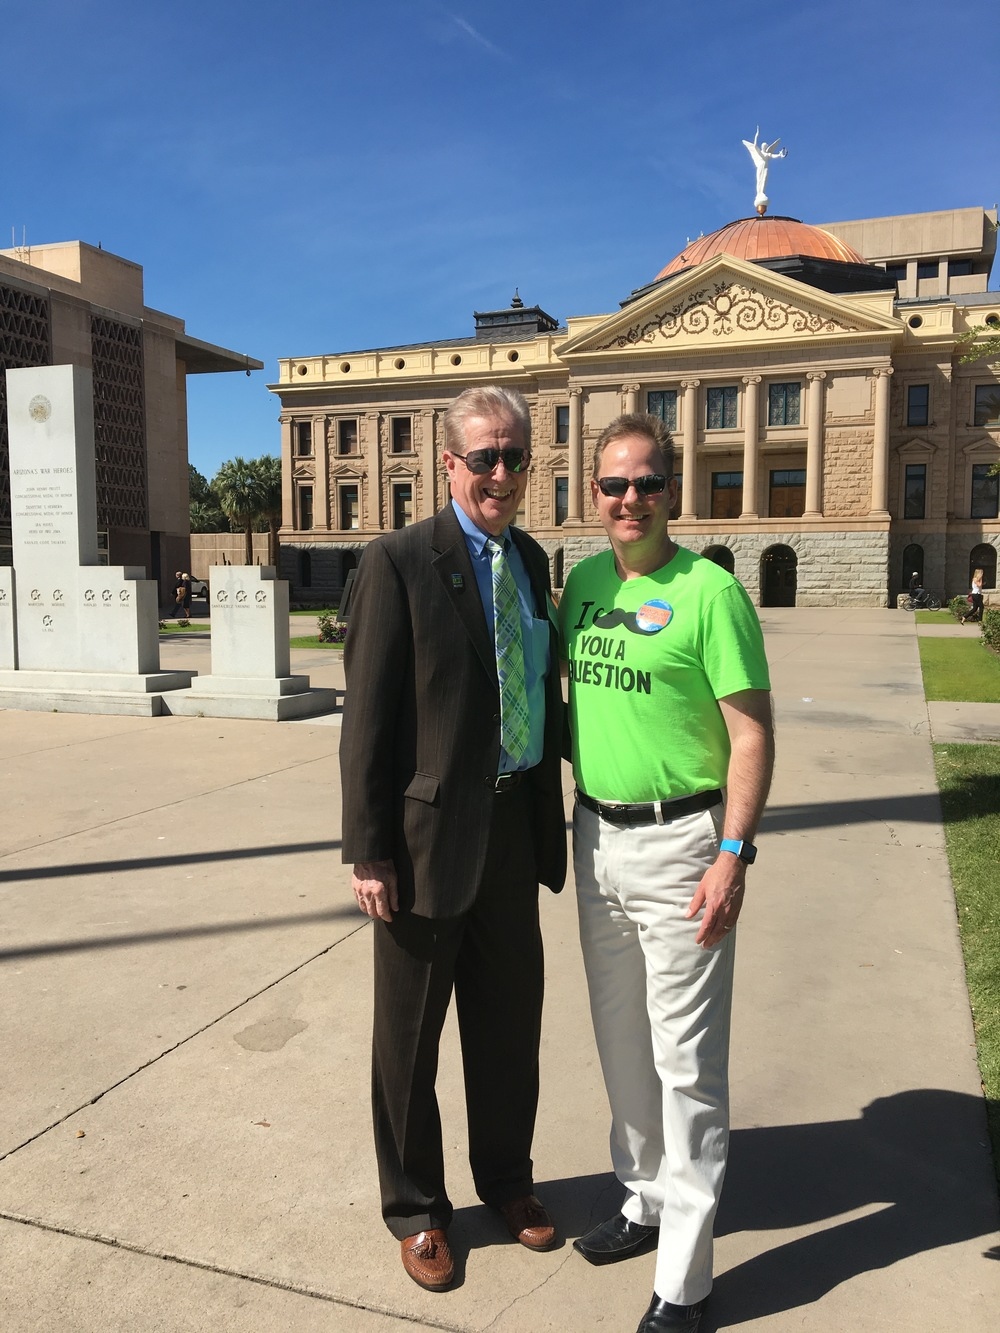 Here I am with my new friend Robert (Bob) who is a 3-time transplant recipient and a fellow volunteer. Today he also met with legislators along with Donate Life representatives to promote the cause